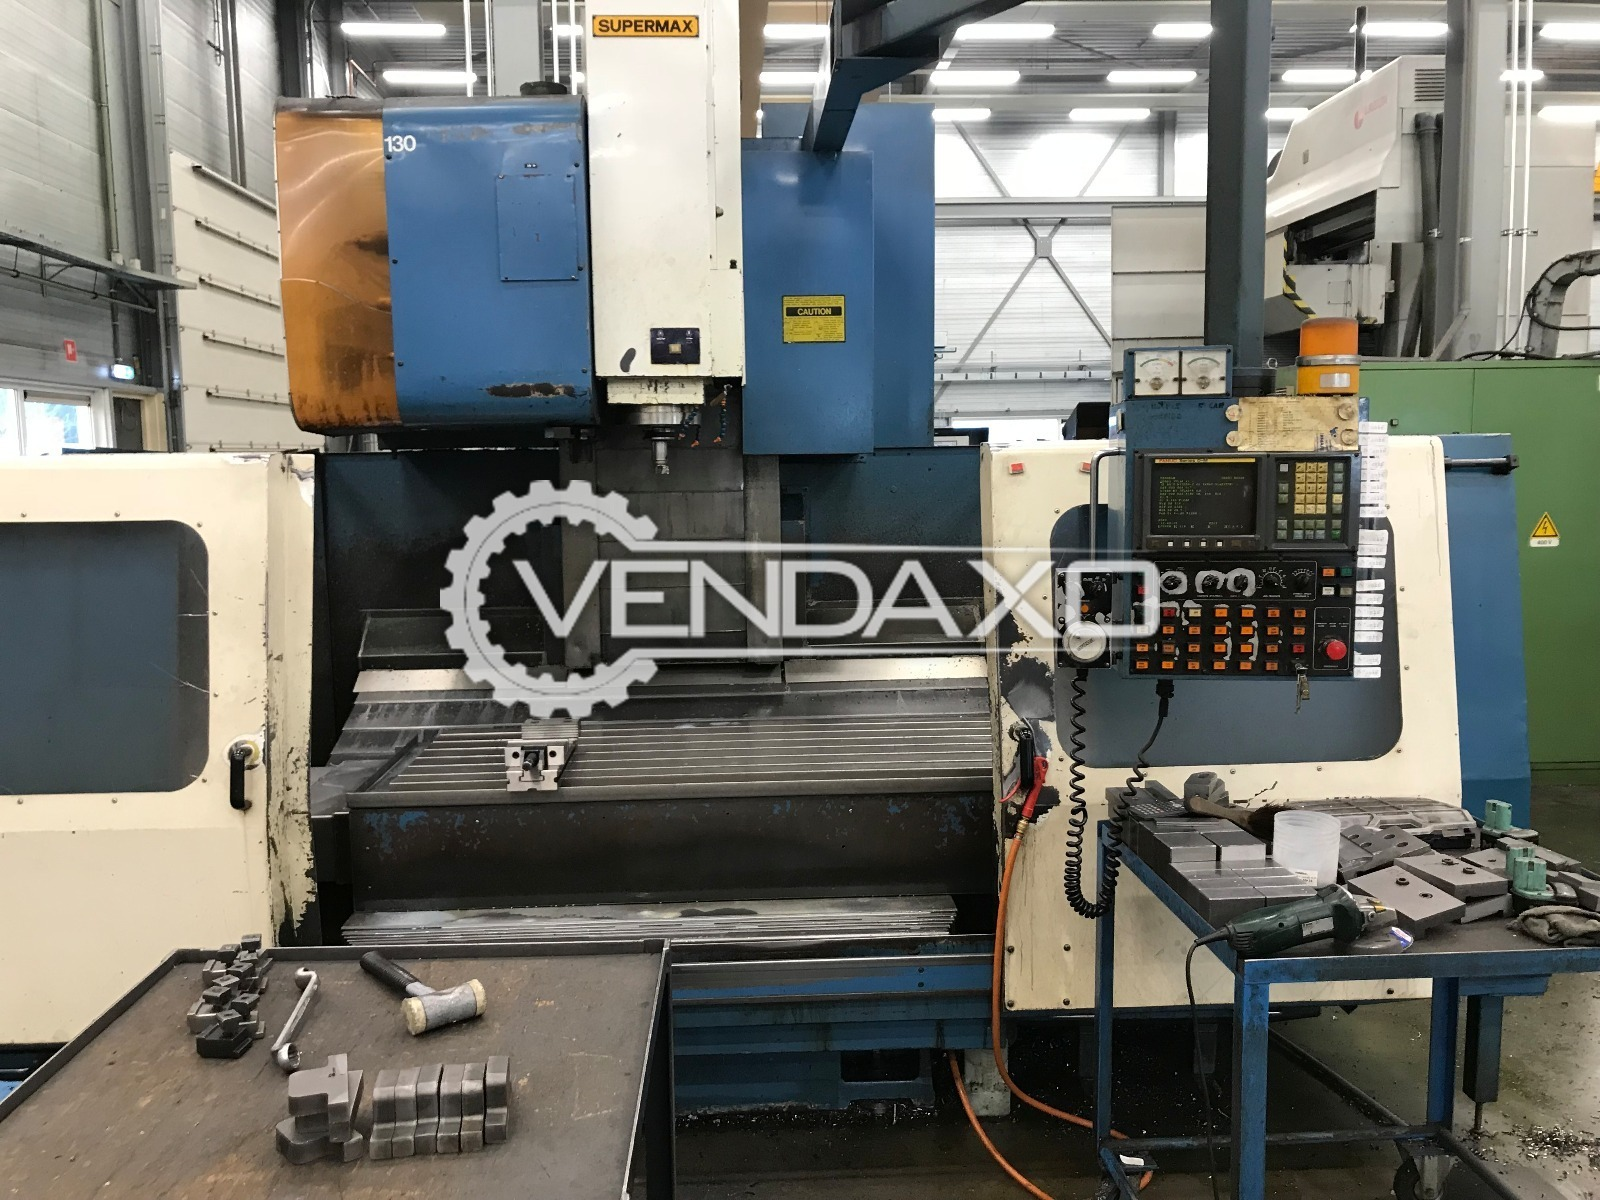 SUPERMAX V165A CNC Vertical Machining Center - Table Size - 1700 x 650 mm